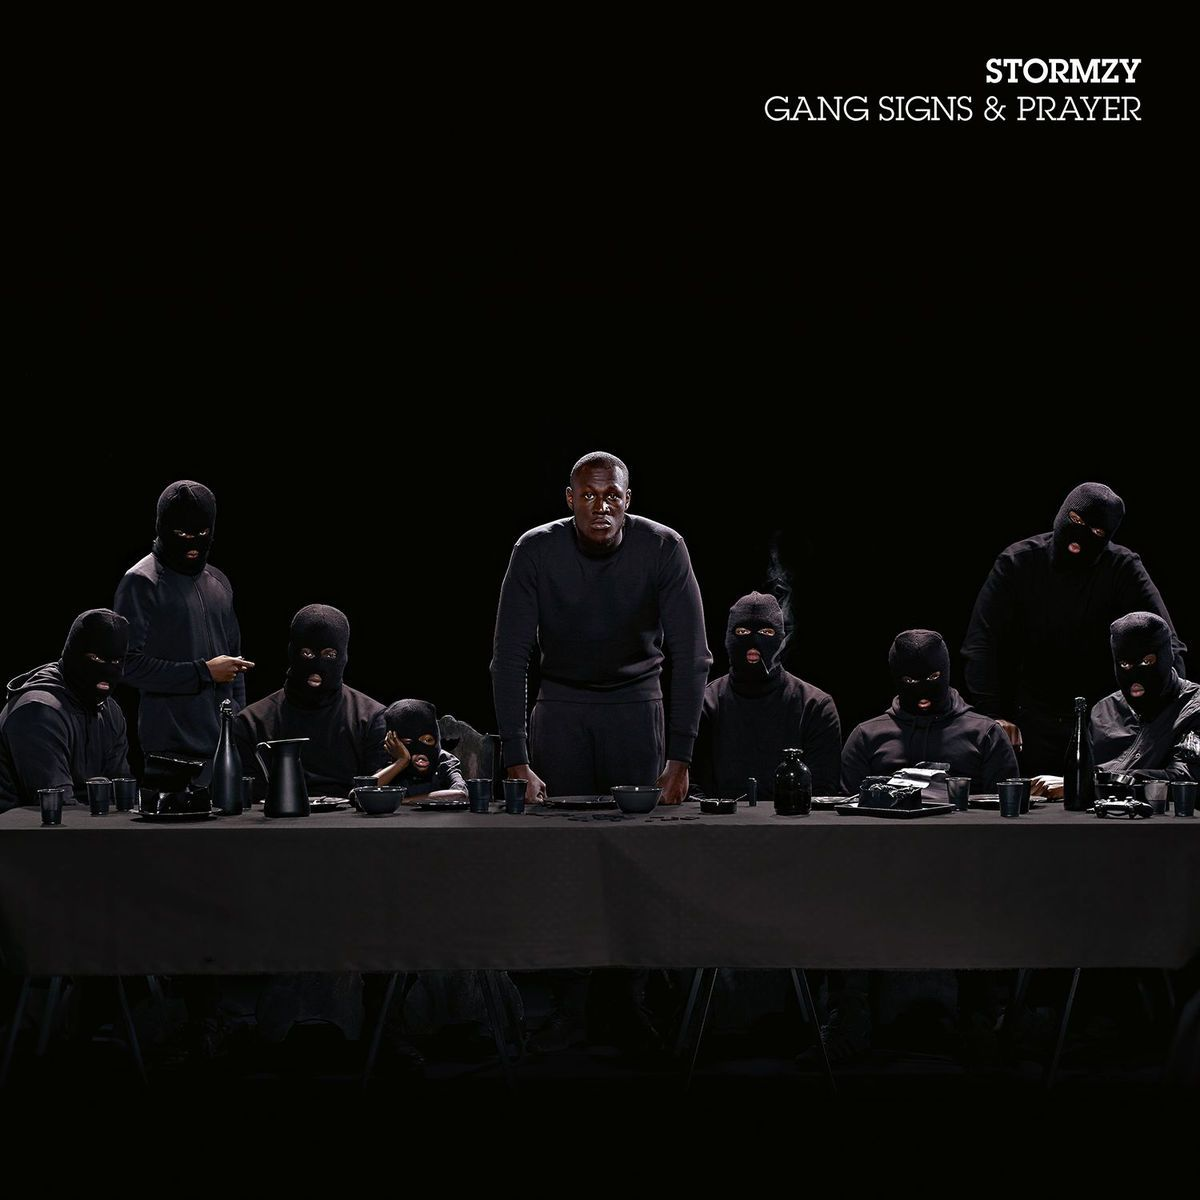 Stormzy - Gang Signs And Prayer album cover